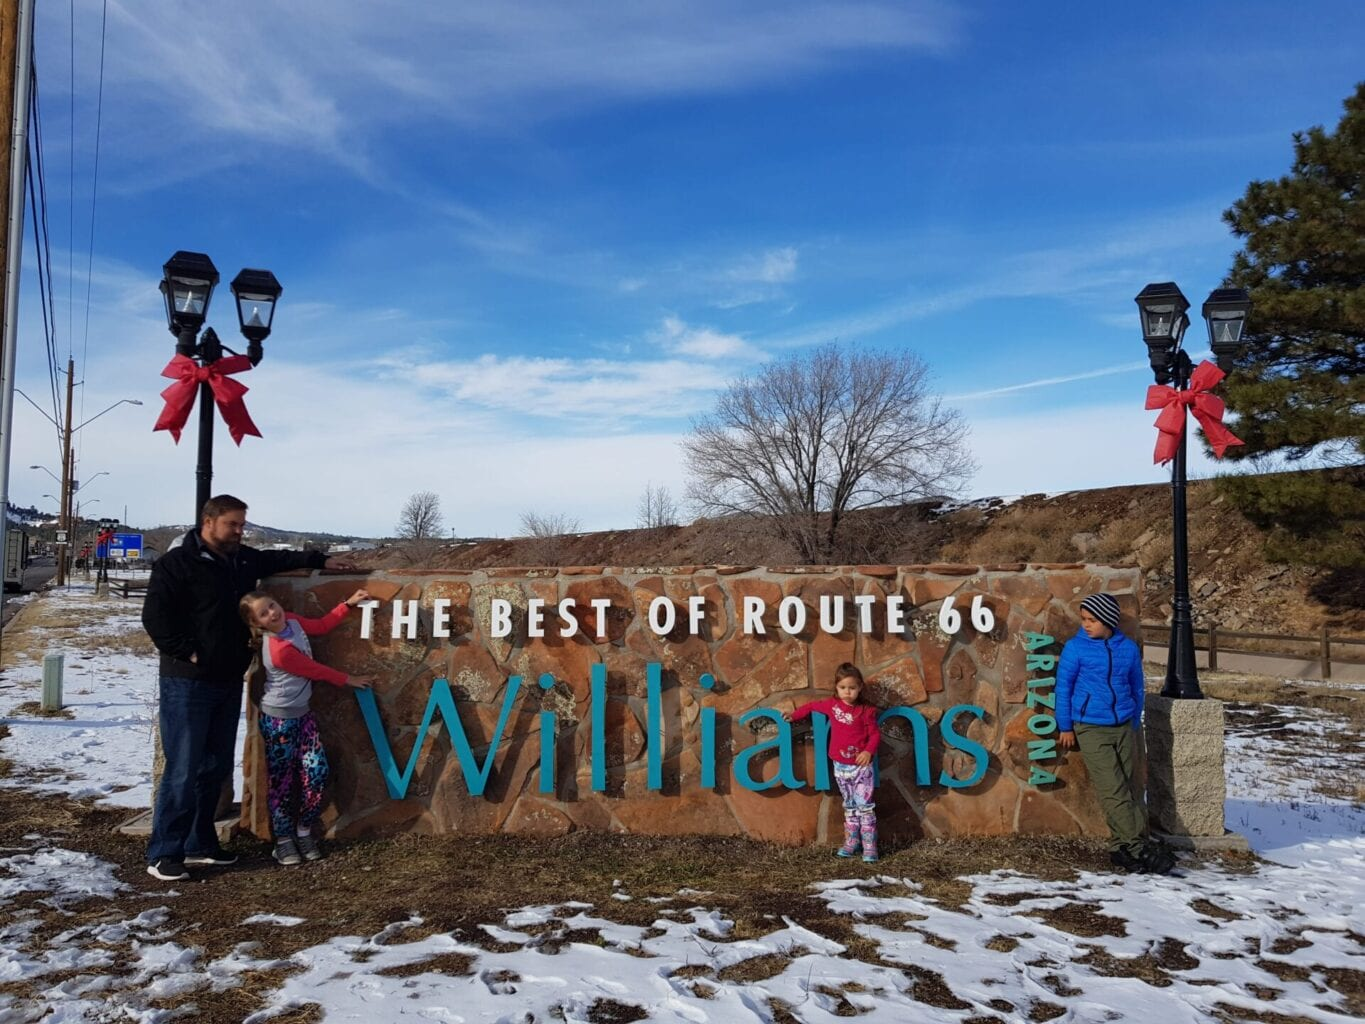 Williams, Arizona - The best of Route 66